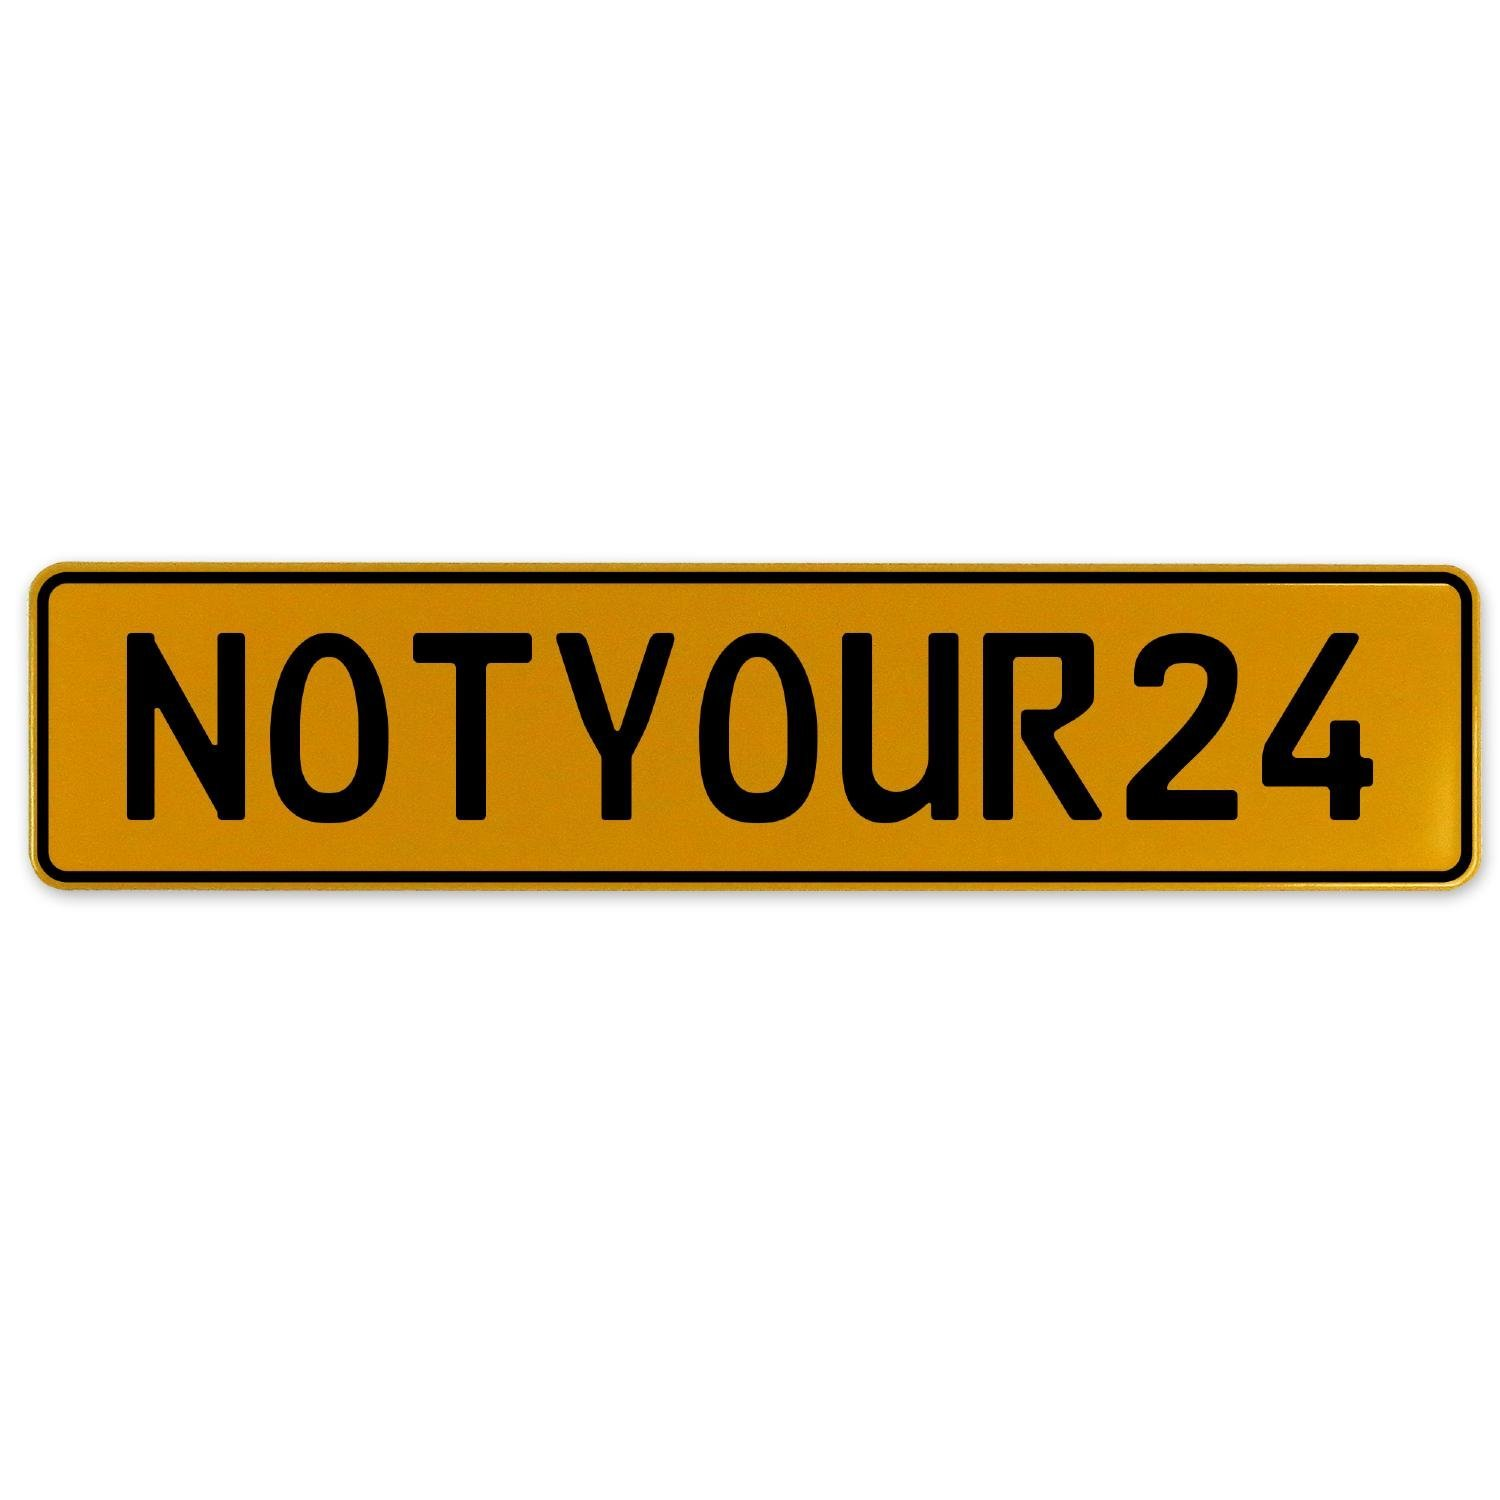 Vintage Parts 560462 NOTYOUR24 Yellow Stamped Aluminum European Plate